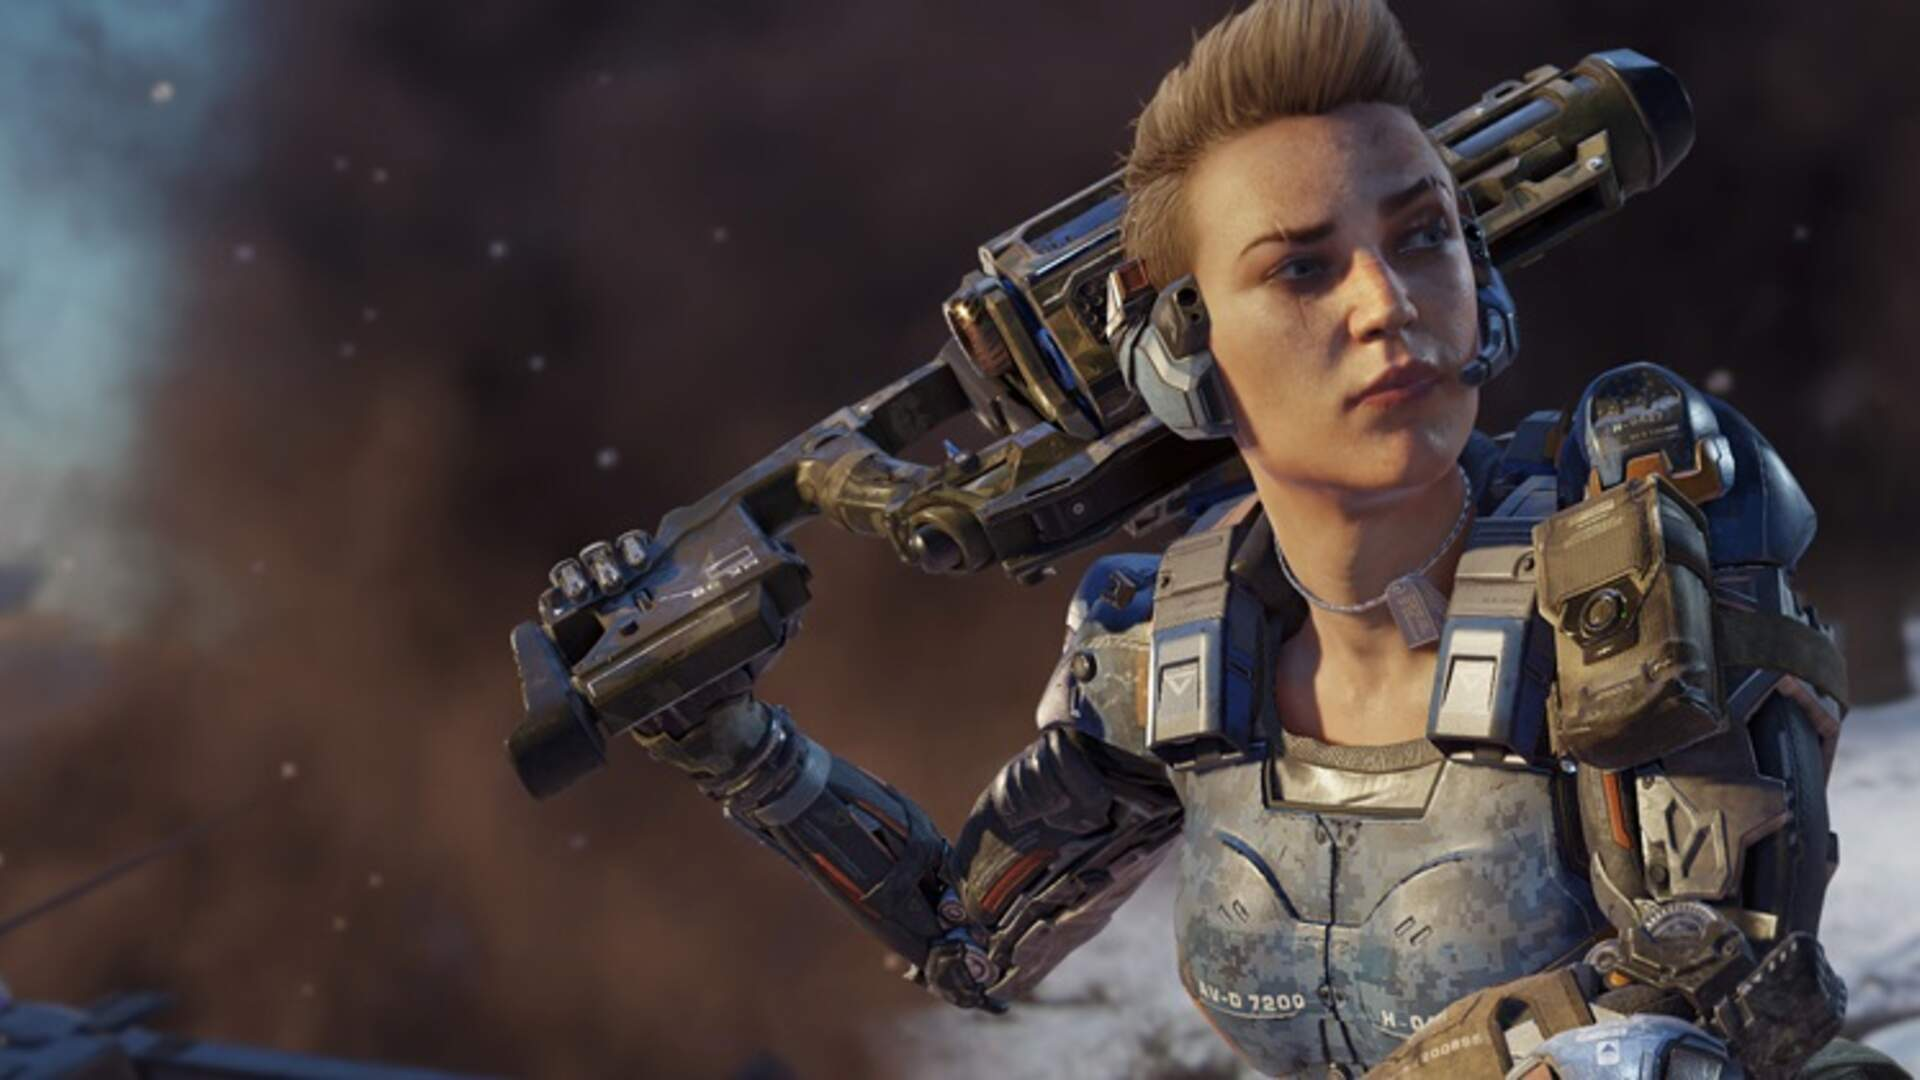 Call of Duty: Black Ops 3 - Specialist Operator Overview & Breakdown